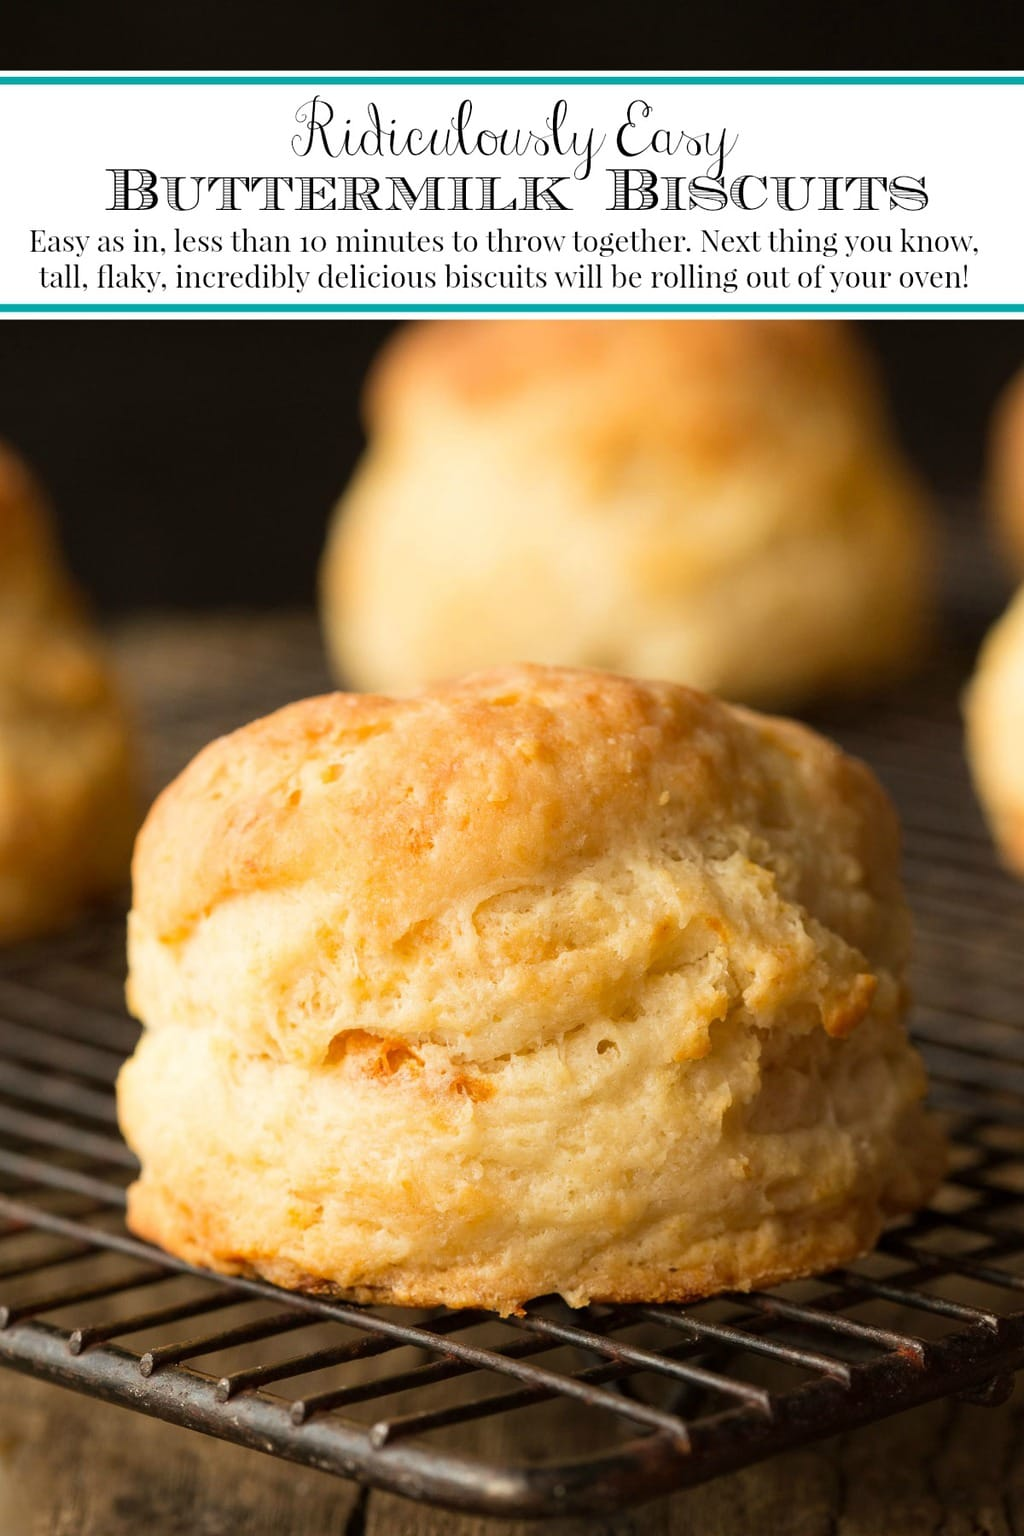 Easy as in, less than 10 minutes to throw together. Next thing you know, tall, flaky, incredibly delicious biscuits! will be rolling out of your oven! #buttermilkbiscuits, #easybiscuits, #bestbiscuits